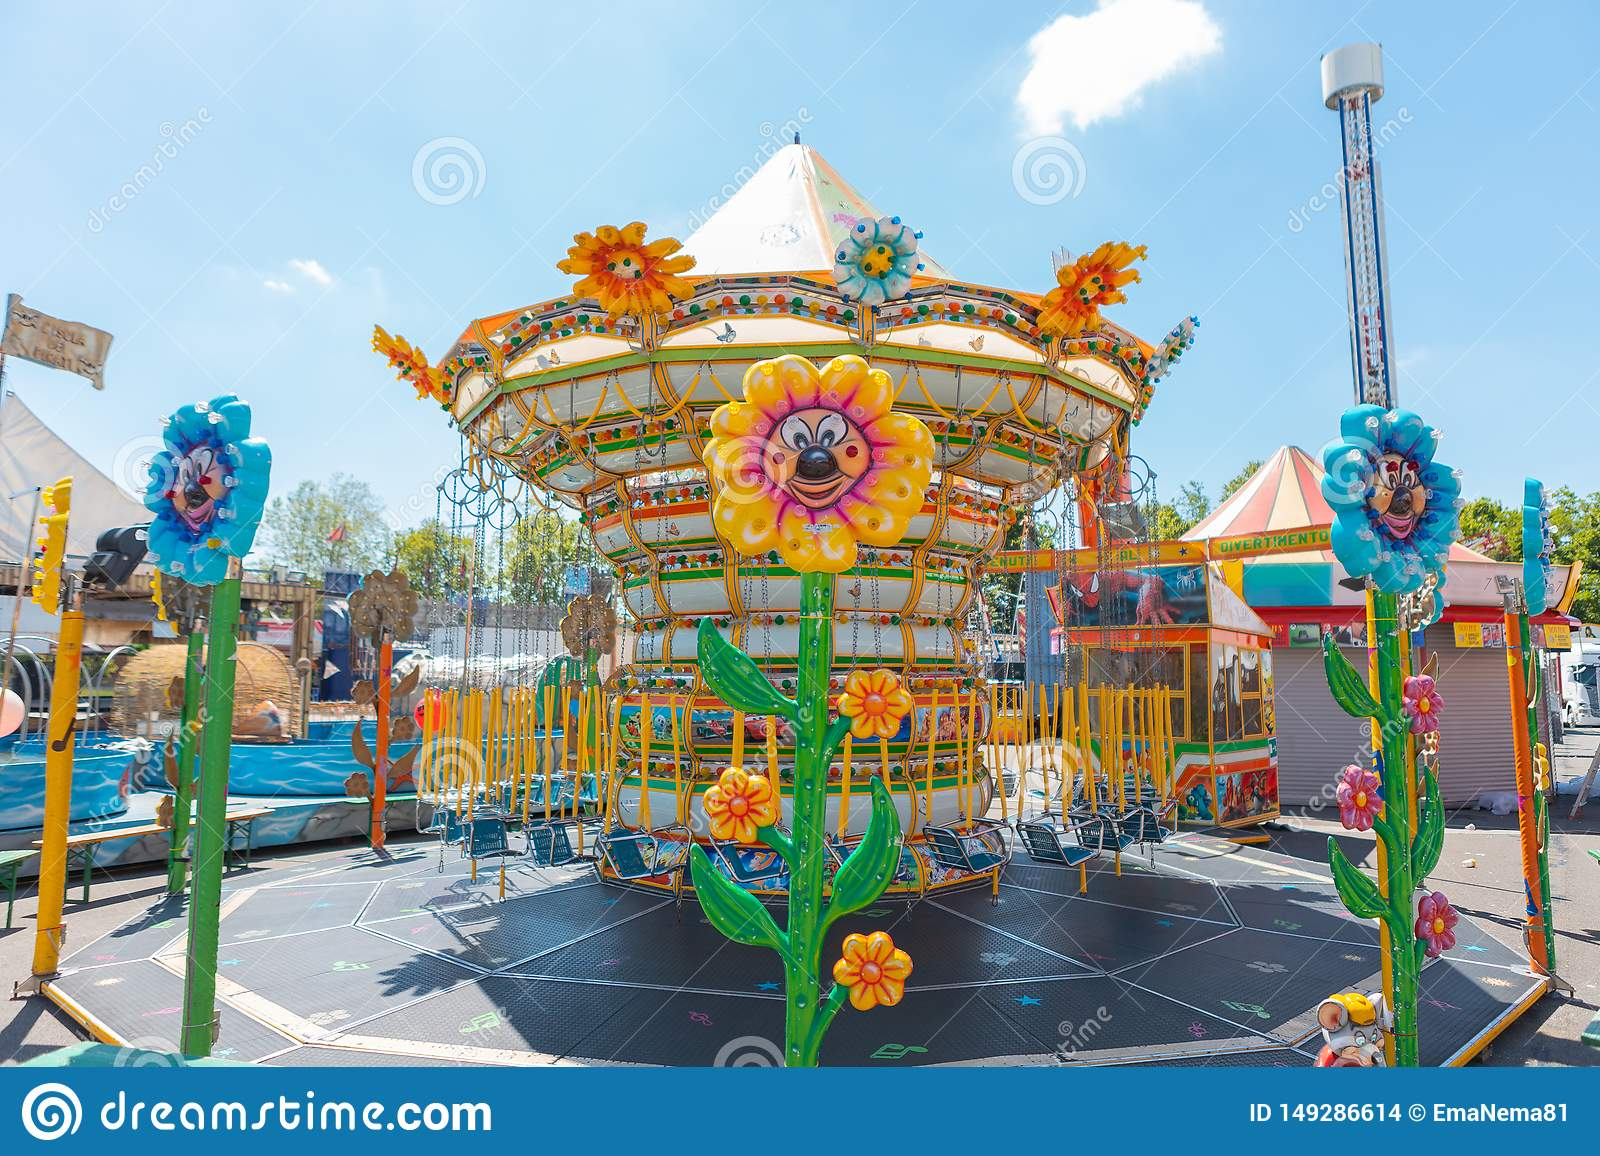 Carousel chains for children in bright colors during a fair in an Italian park flower shaped lights